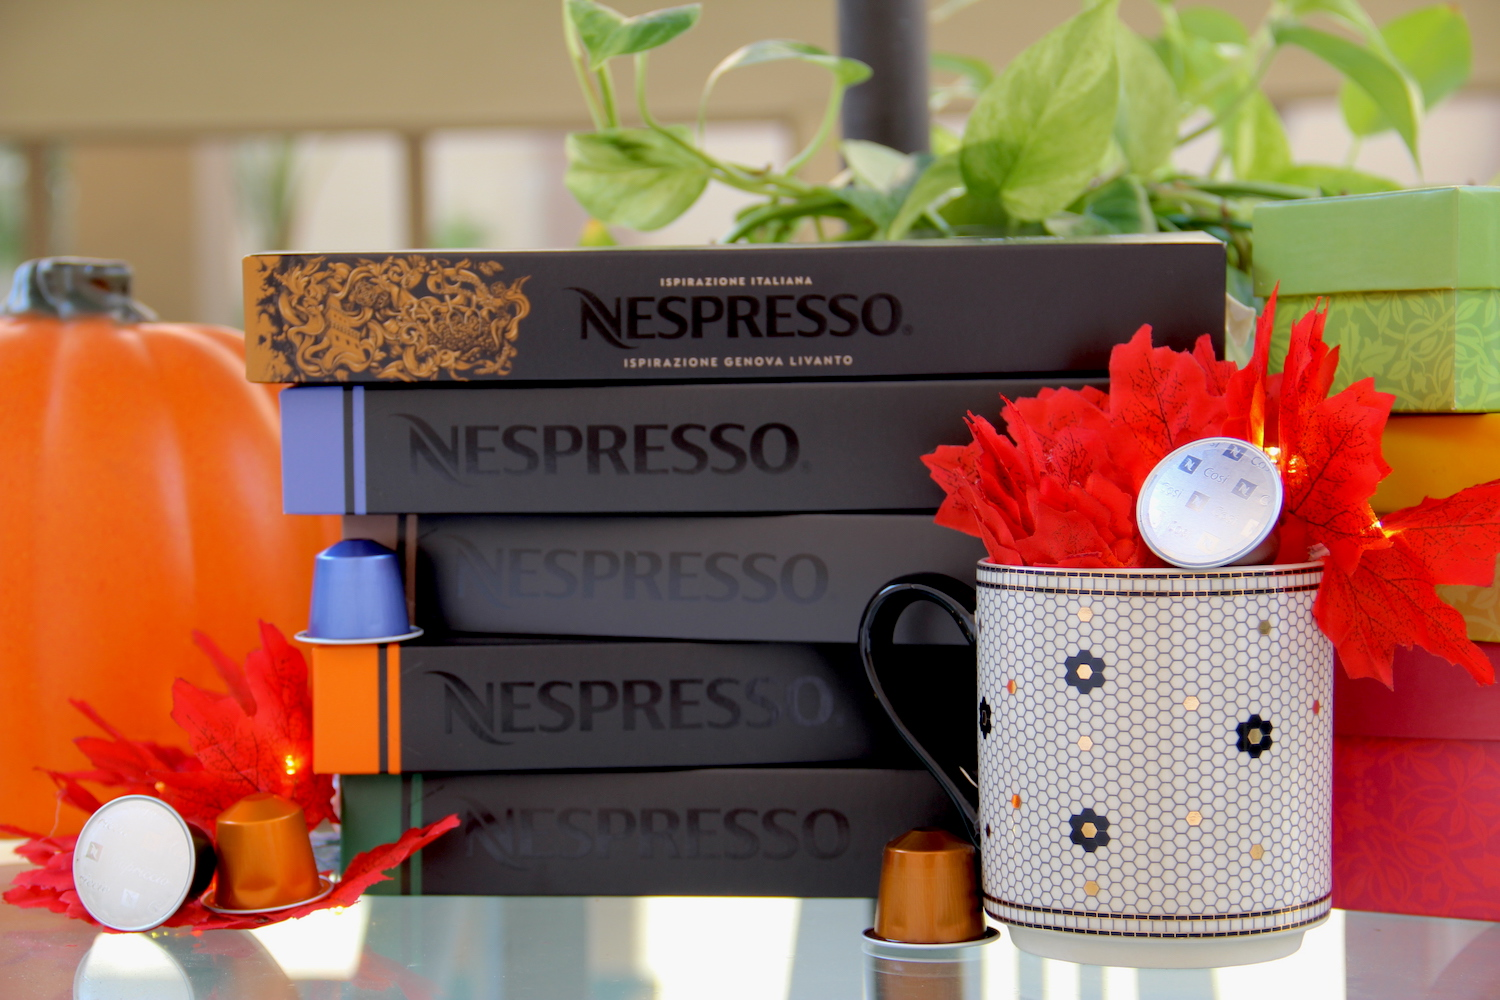 Nespresso capsules, bed bath and beyond, coffee